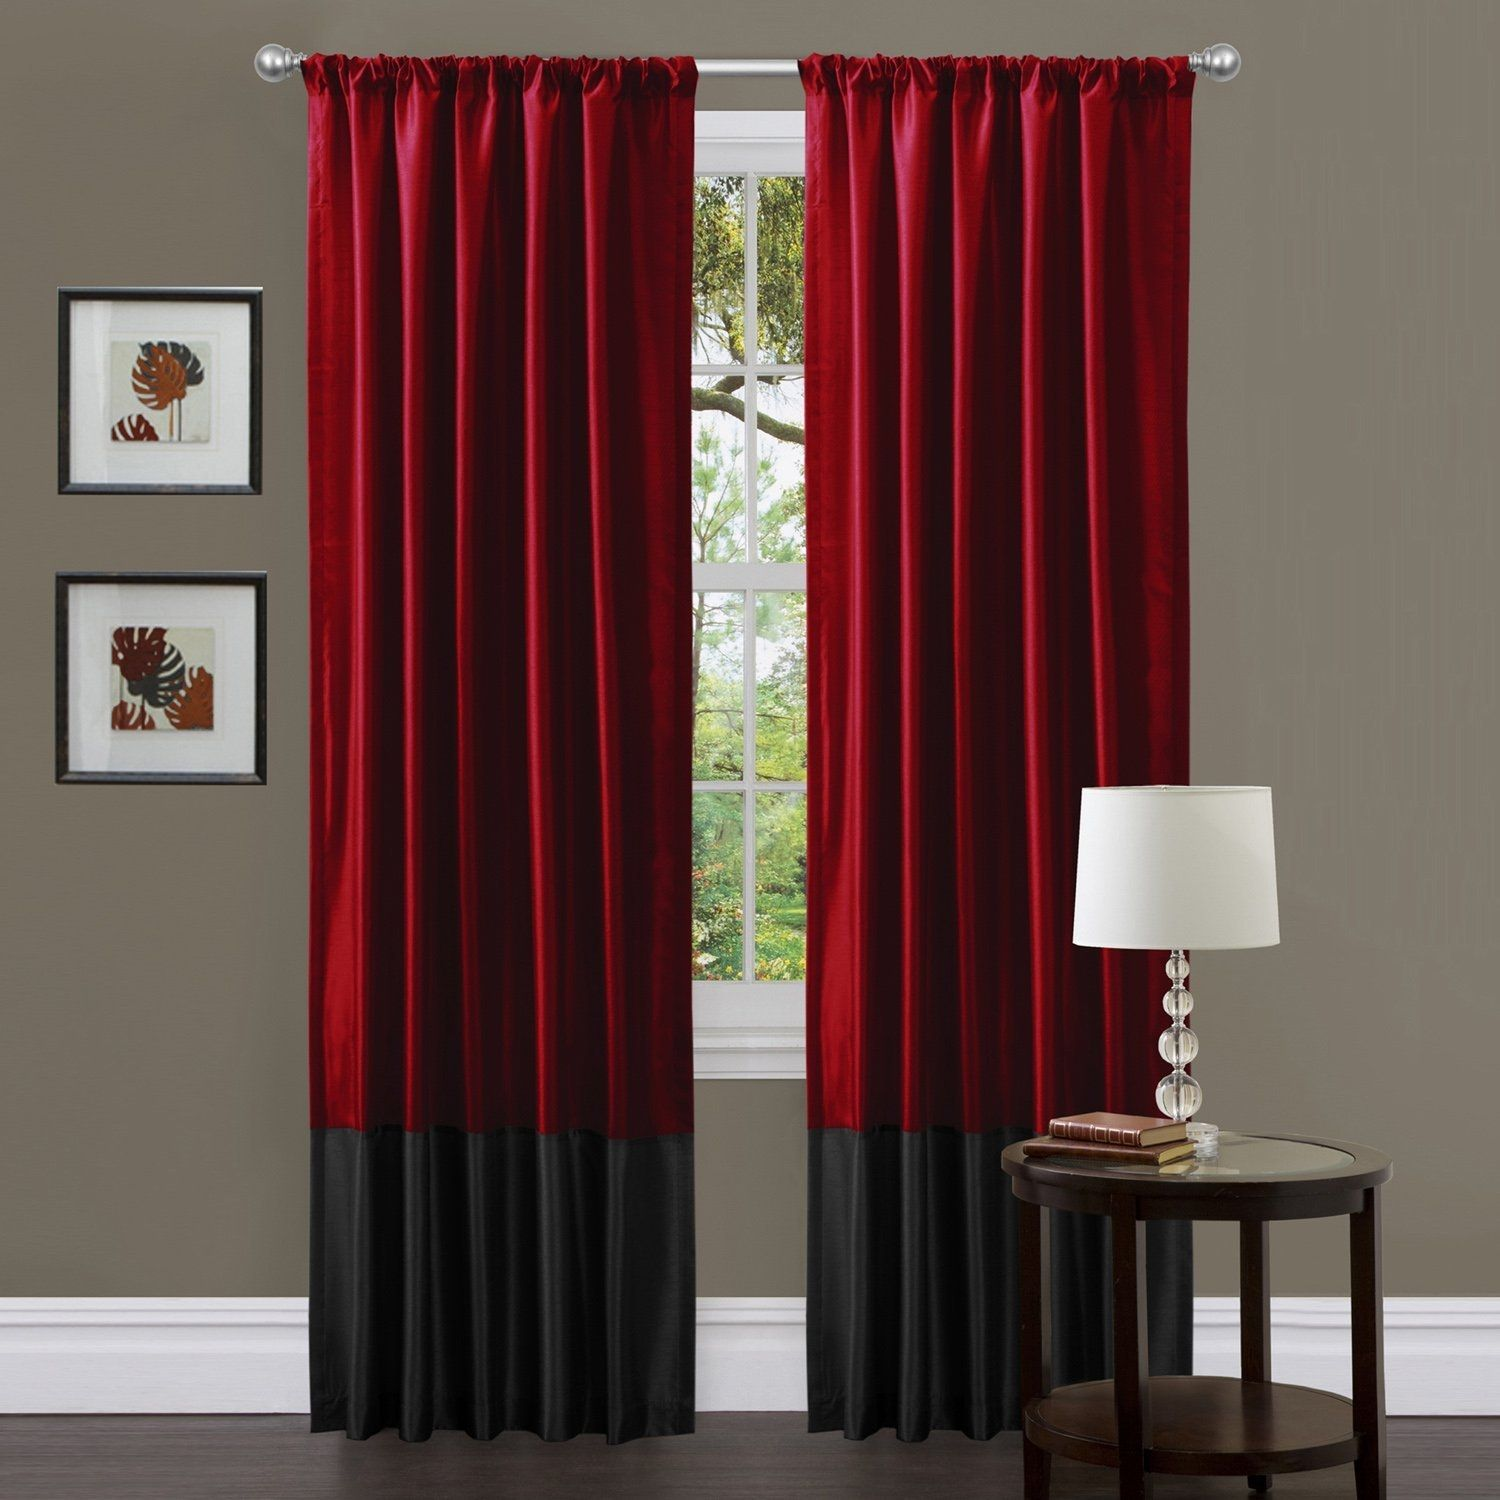 Room Red Black Curtains Living Room